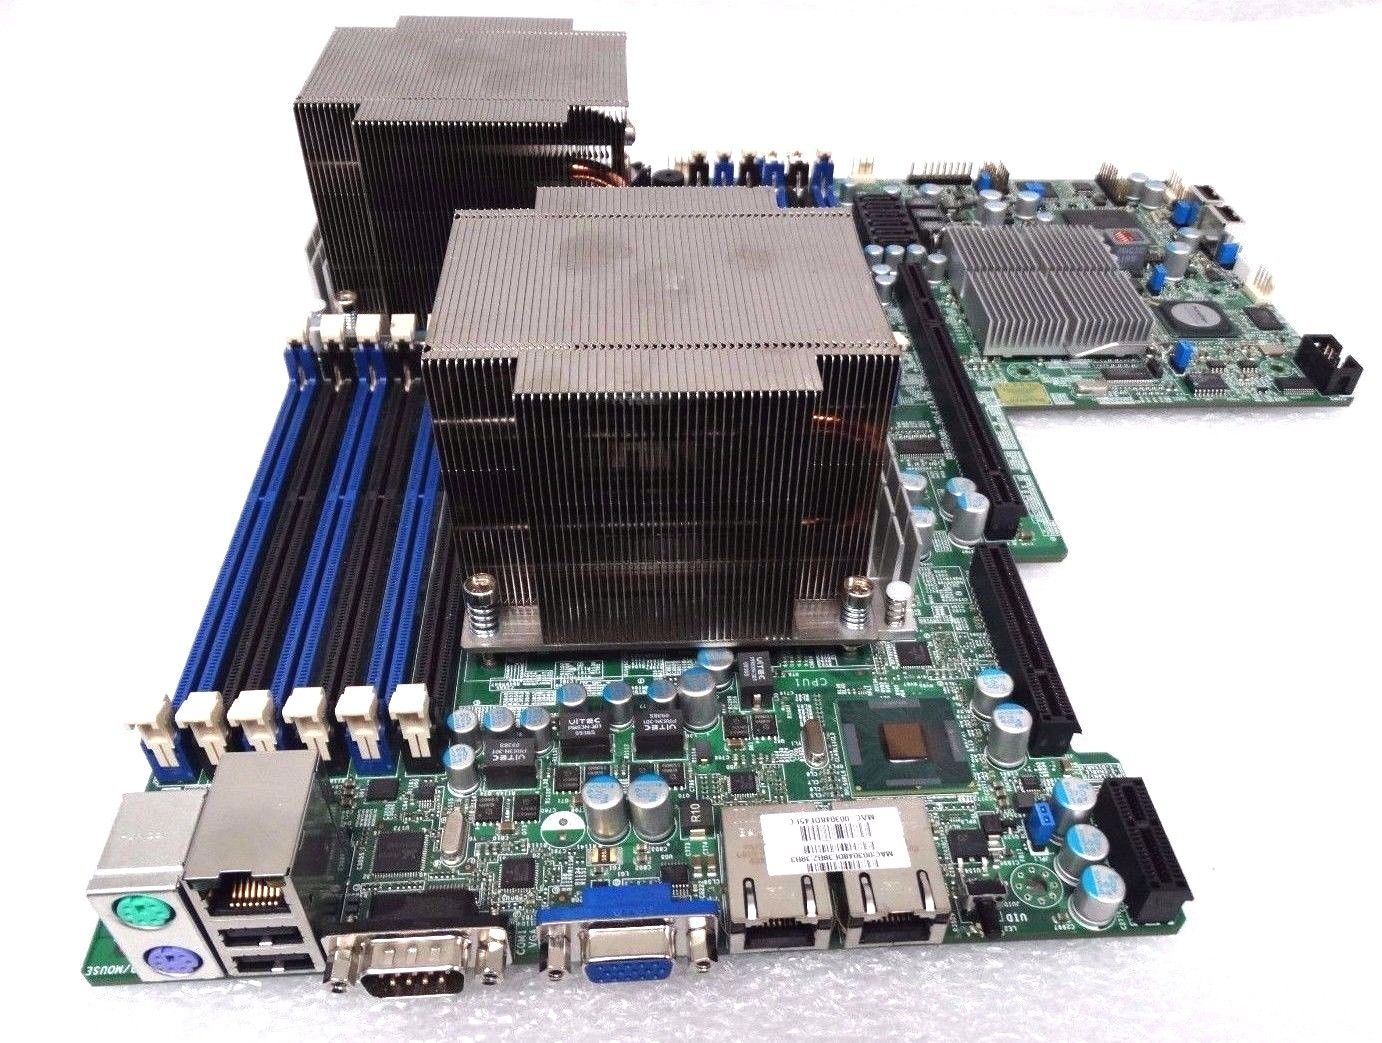 Supermicro Dual Xeon LGA1366 System Board With Heatsinks (X8DTU-F)